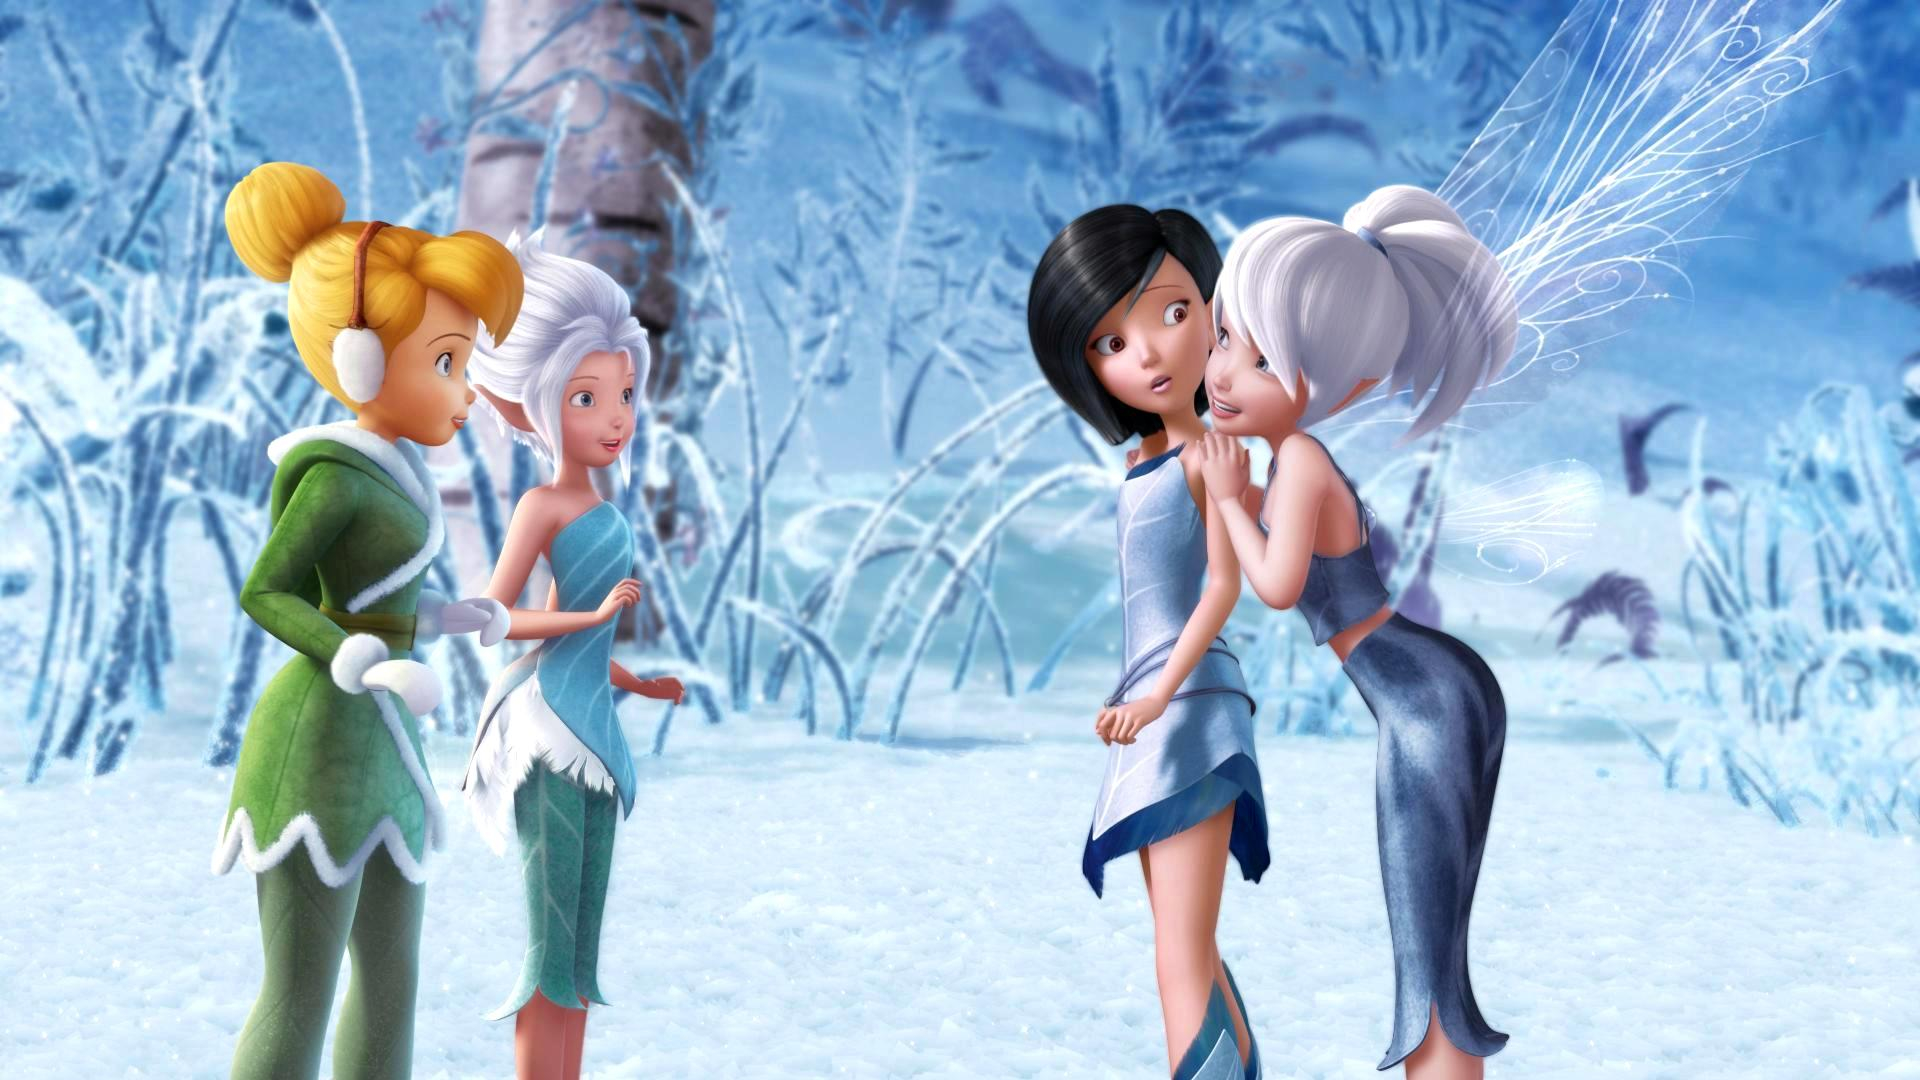 Tinkerbell And The Mysterious Winter Woods Full HD Wallpaper